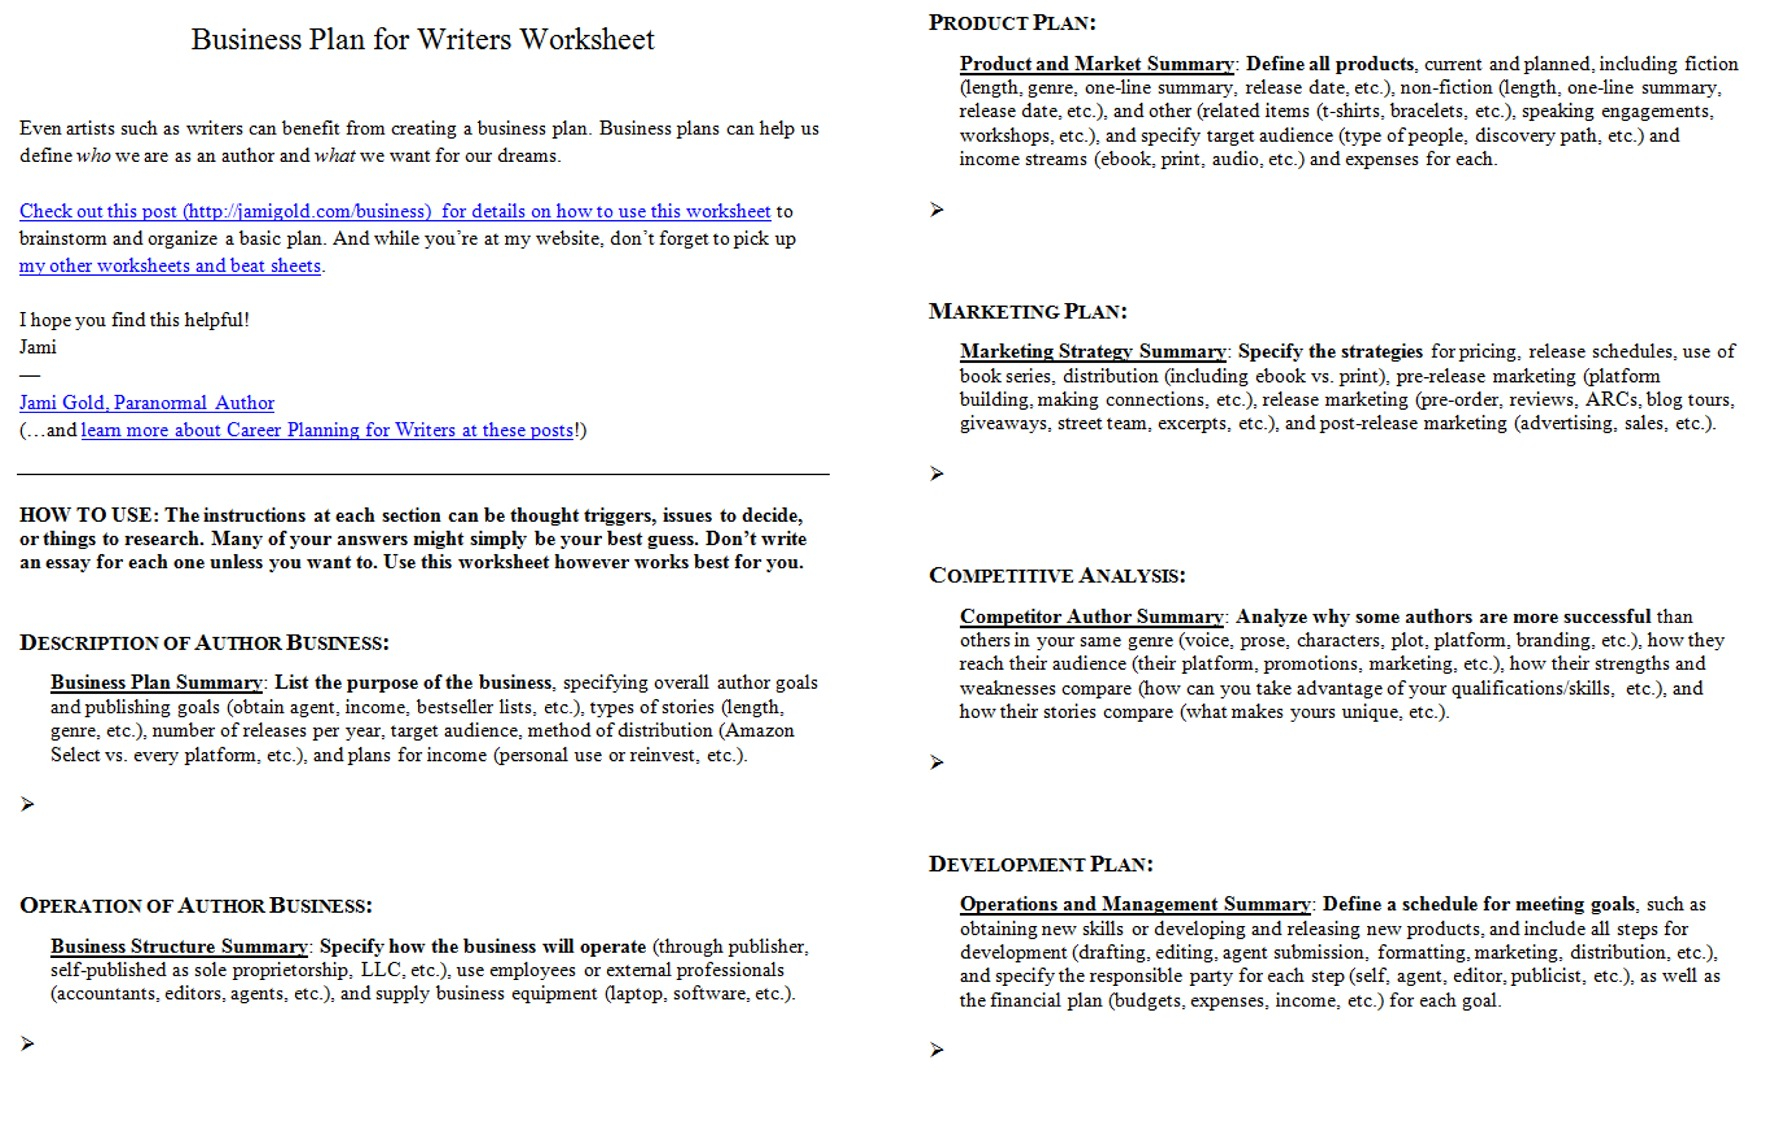 Proatmealus  Seductive Worksheets For Writers  Jami Gold Paranormal Author With Engaging Screen Shot Of Both Pages Of The Business Plan For Writers Worksheet With Nice Understanding Chemical Equations Worksheet Answers Also Schwa Sound Worksheets In Addition Education Worksheet And Thomas The Train Worksheets As Well As Math Dilation Worksheet Additionally Th Words Worksheet From Jamigoldcom With Proatmealus  Engaging Worksheets For Writers  Jami Gold Paranormal Author With Nice Screen Shot Of Both Pages Of The Business Plan For Writers Worksheet And Seductive Understanding Chemical Equations Worksheet Answers Also Schwa Sound Worksheets In Addition Education Worksheet From Jamigoldcom